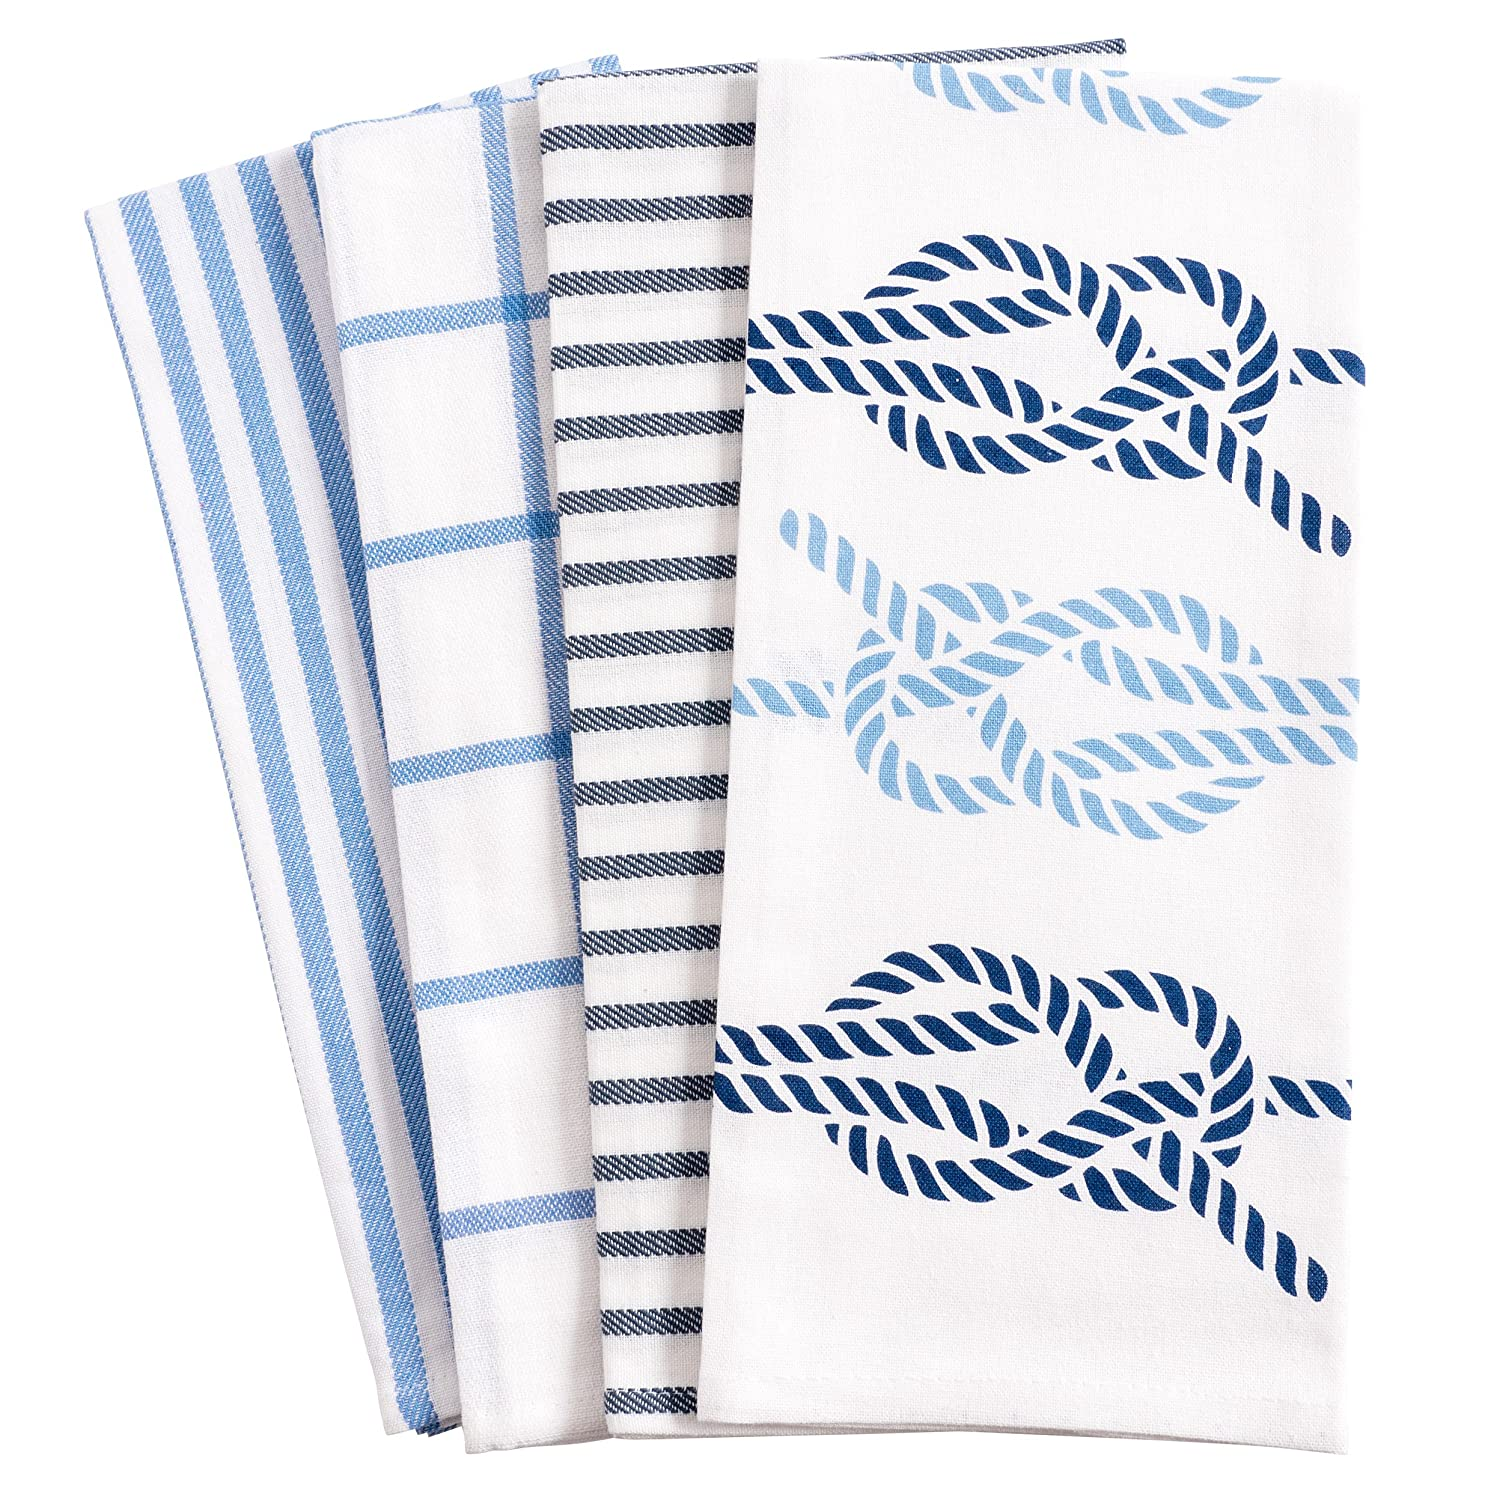 KAF Home Pantry Nautical Knots Kitchen Dish Towel Set of 4, 100-Percent Cotton, 18 x 28-inch